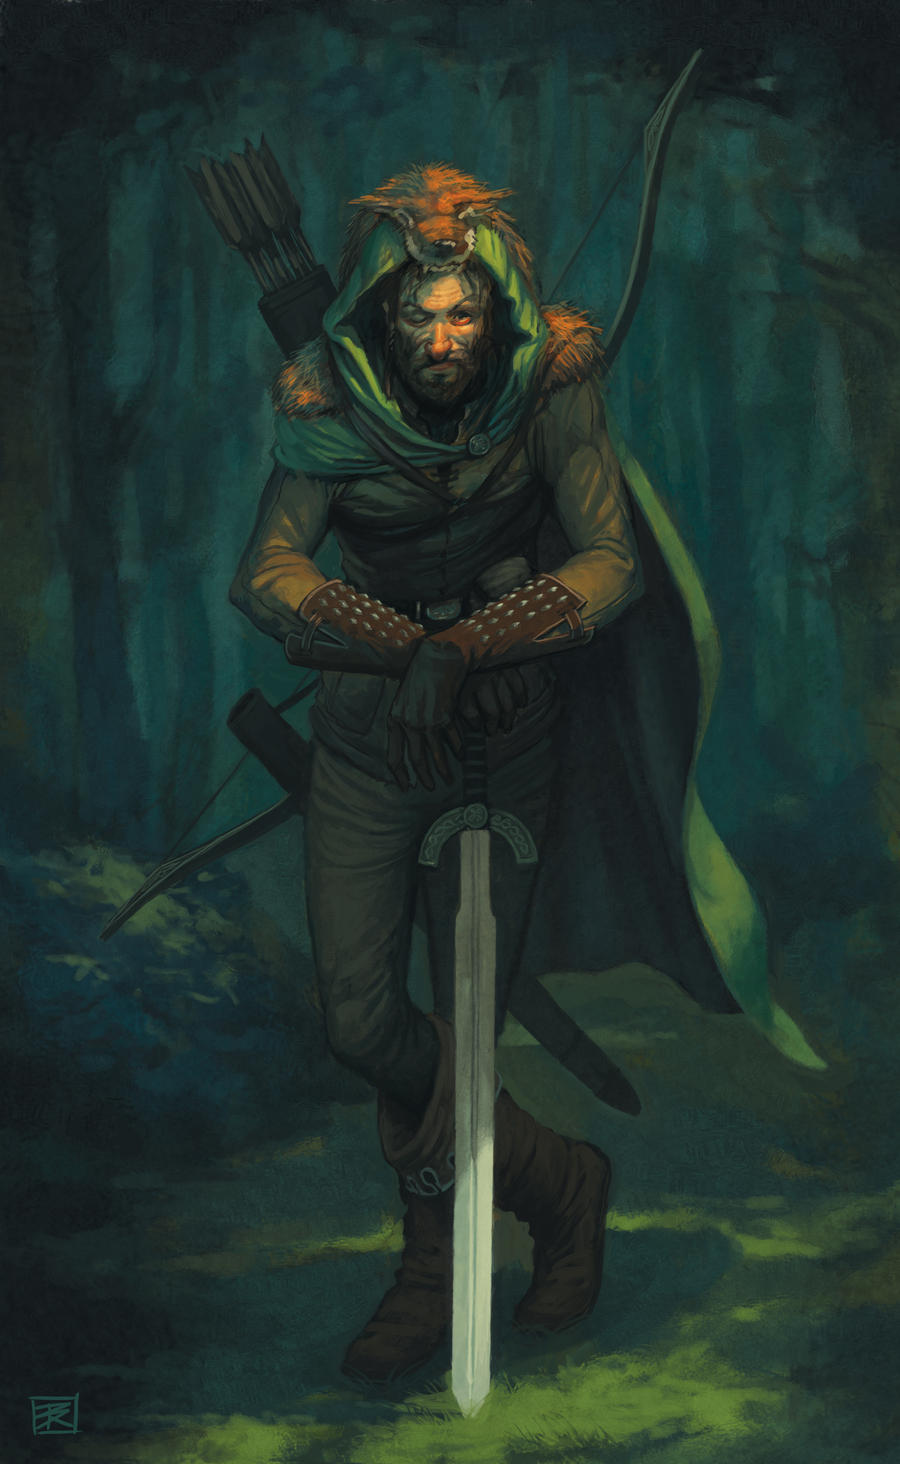 robin hood by denmanrooke on deviantart